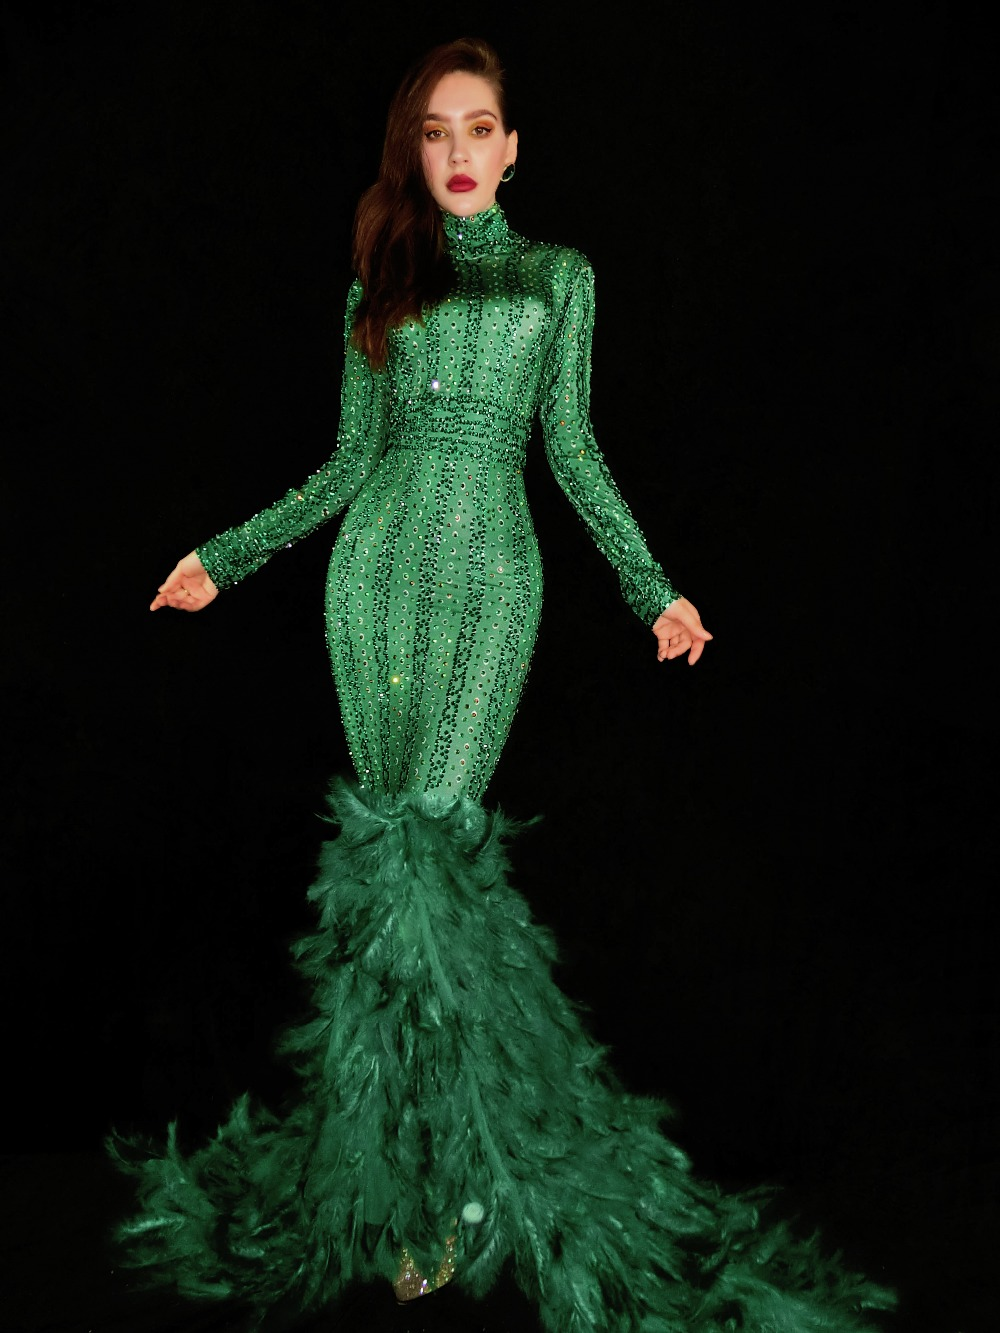 Green Rhinestones Feather Tail Sexy Long Dress Birthday Celebrate Outfit Prom Party Wear Female Singer Dresses